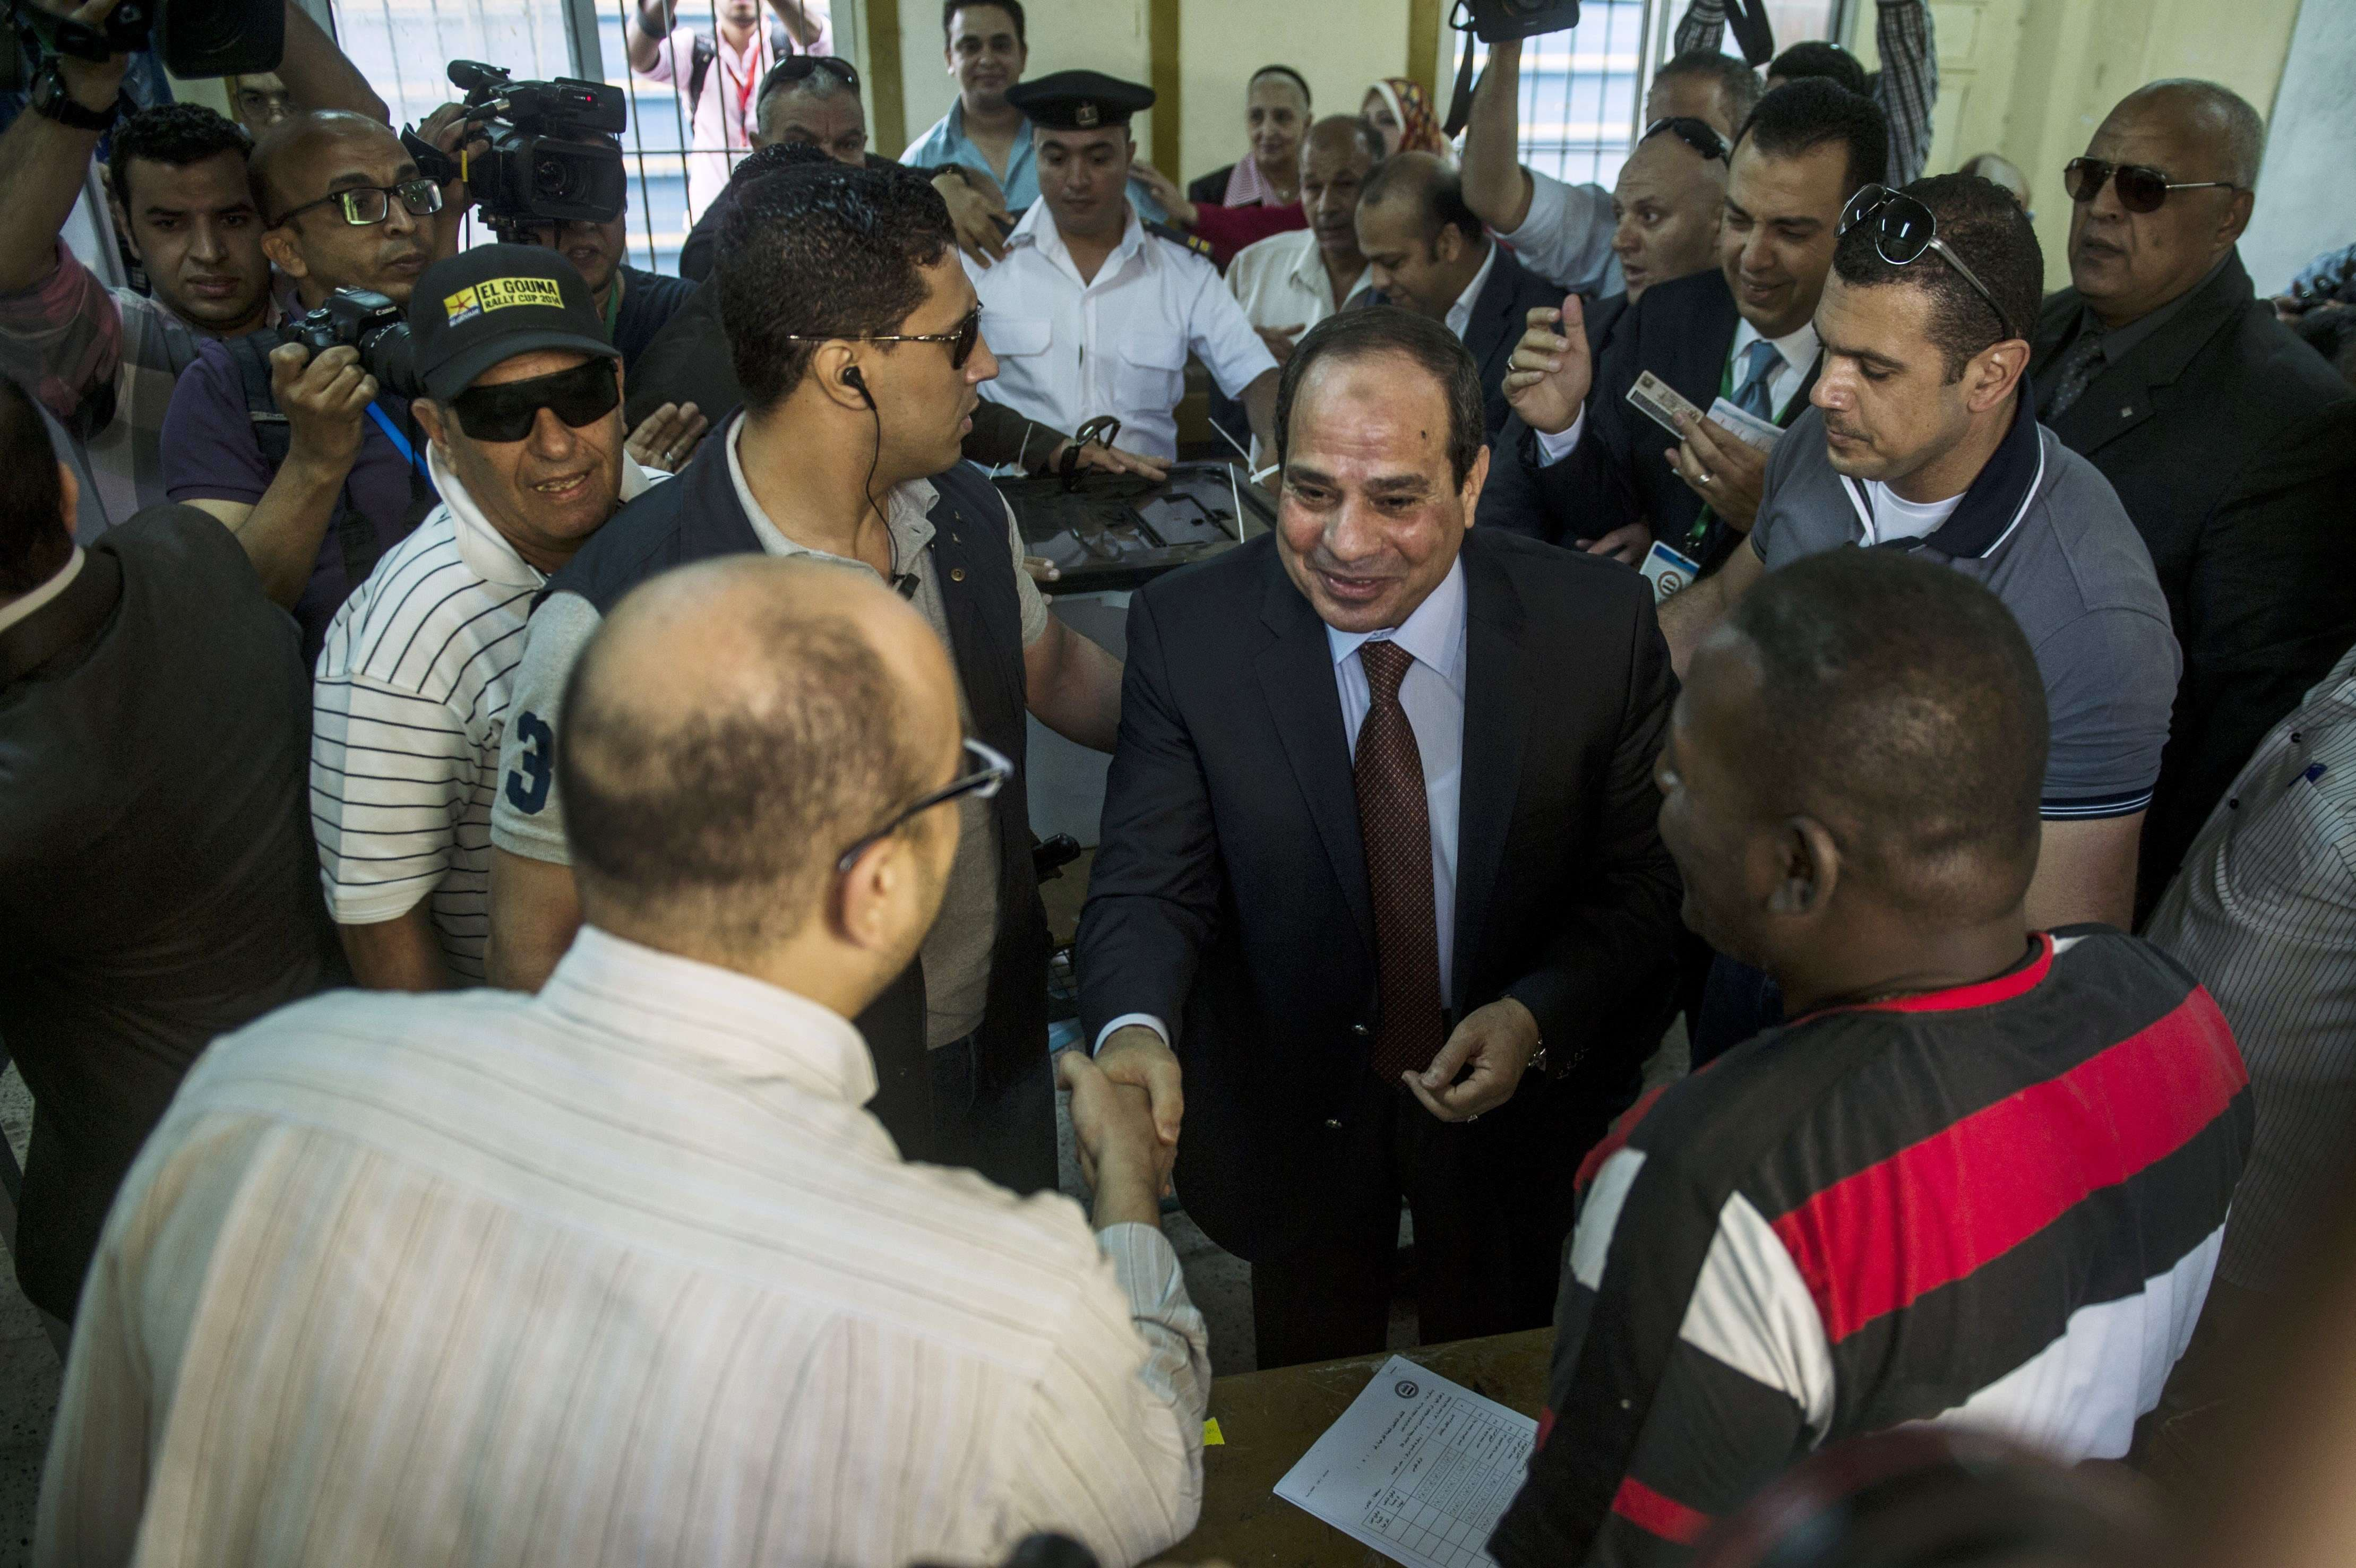 Egypt's ex-army chief and leading presidential candidate Abdel Fattah al-Sisi (C) arrives at a polling station in Heliopolis to vote in Cairo on May 26, 2014.